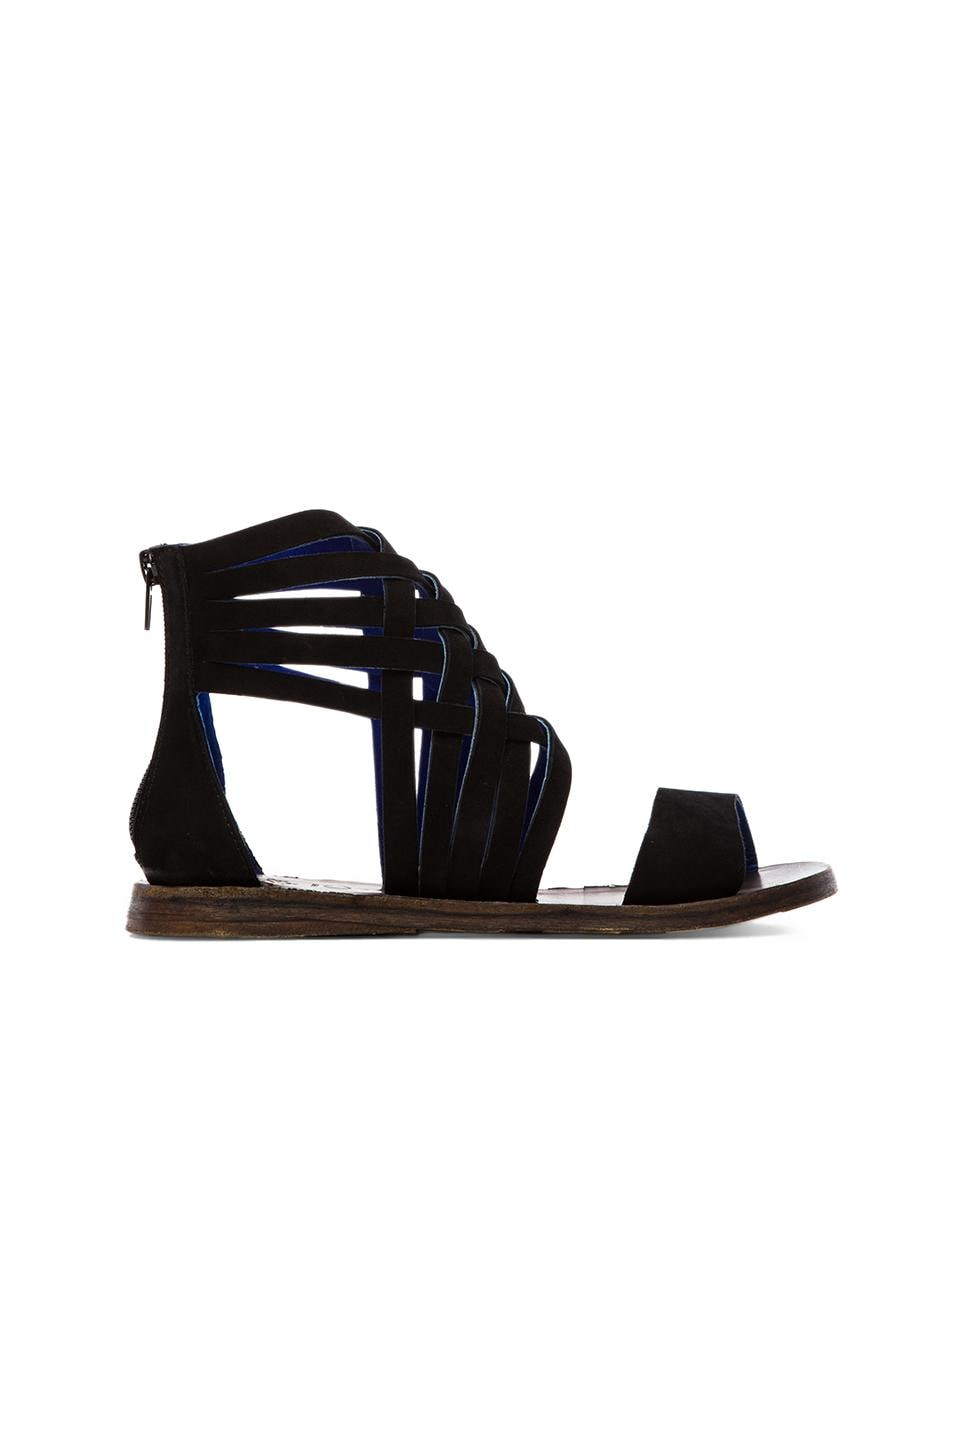 Jeffrey Campbell Moretz Gladiator Sandal in Black Nubuck